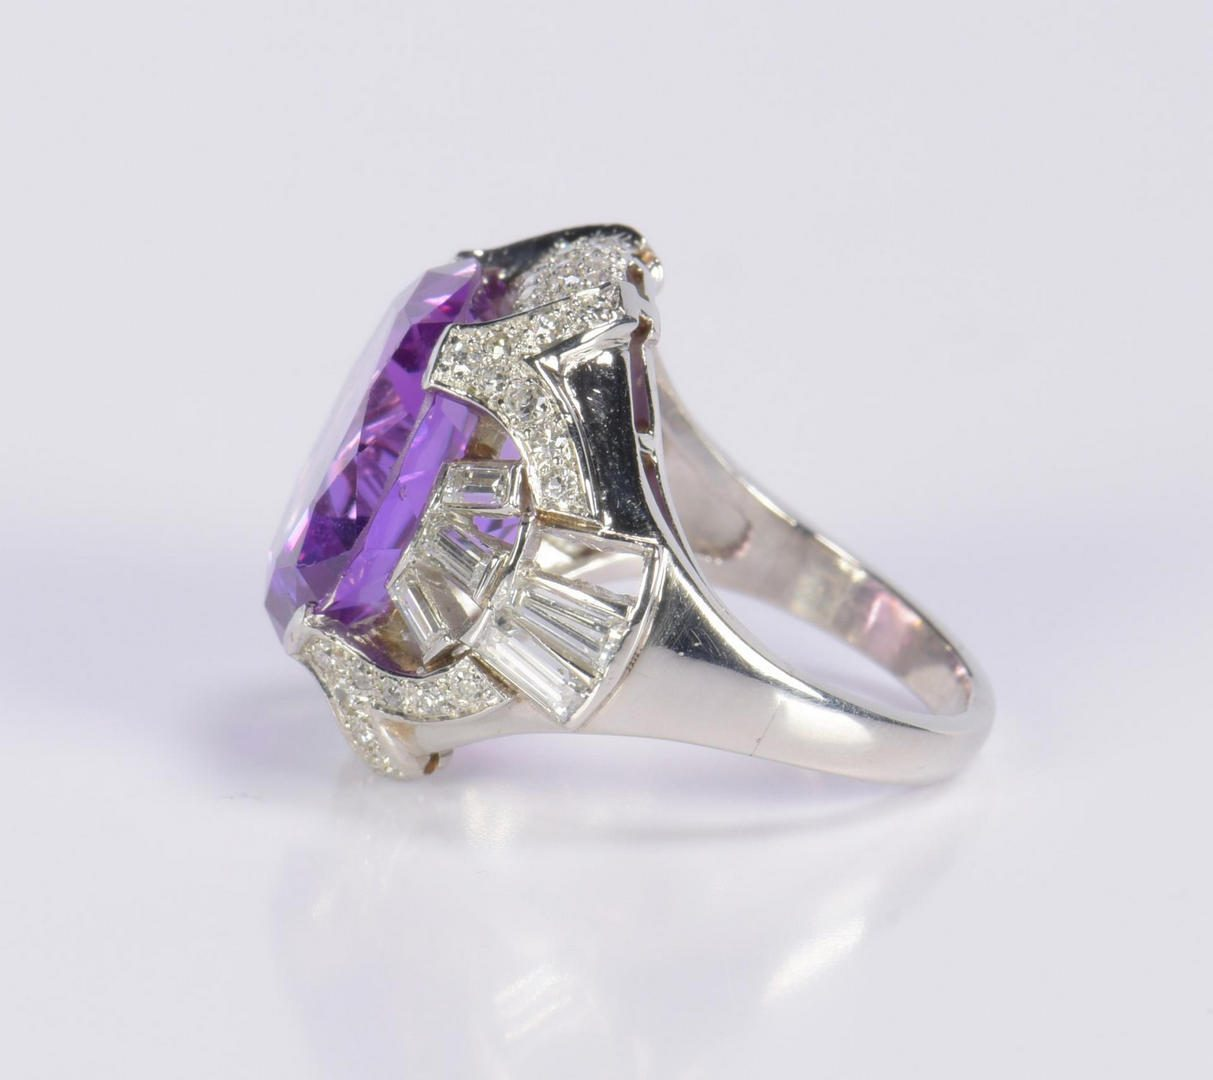 Lot 17: Vintage Platinum and Dia Ring Mounting w/ purple stone